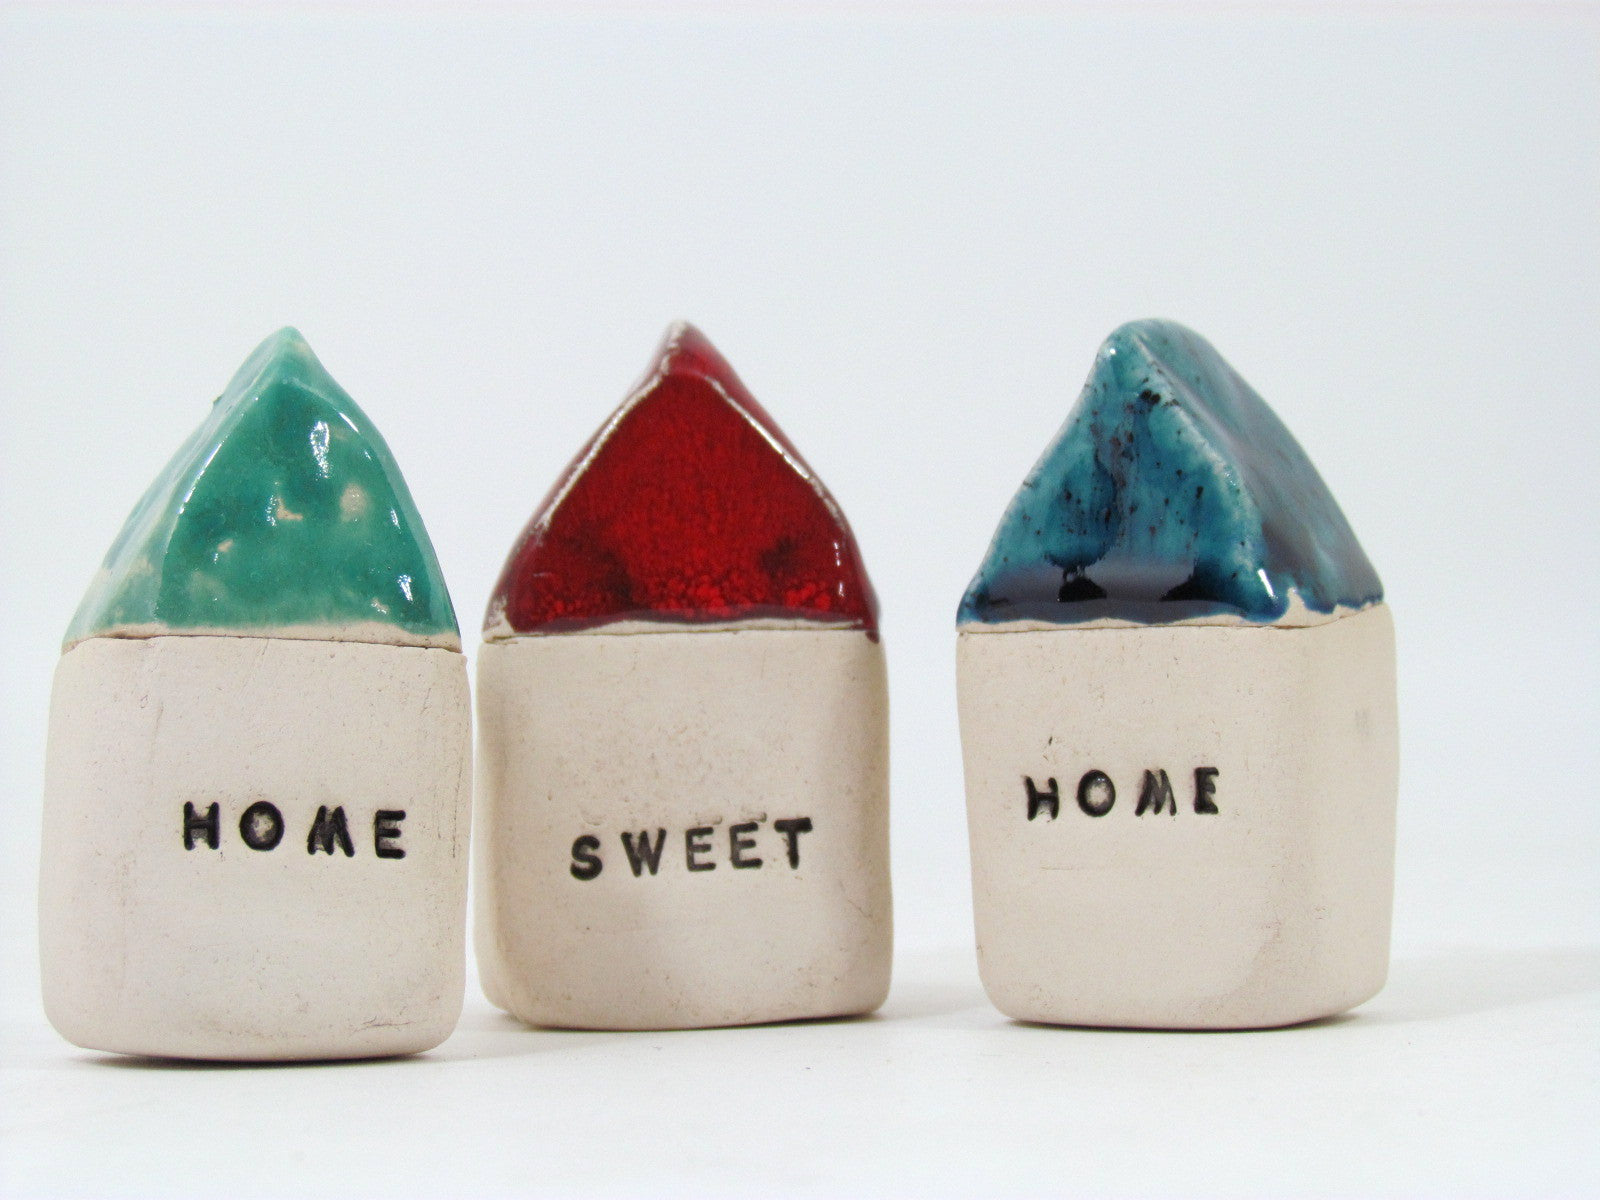 HOME SWEET HOME set of rustic ceramic houses in colors of your choice - Ceramics By Orly  - 1